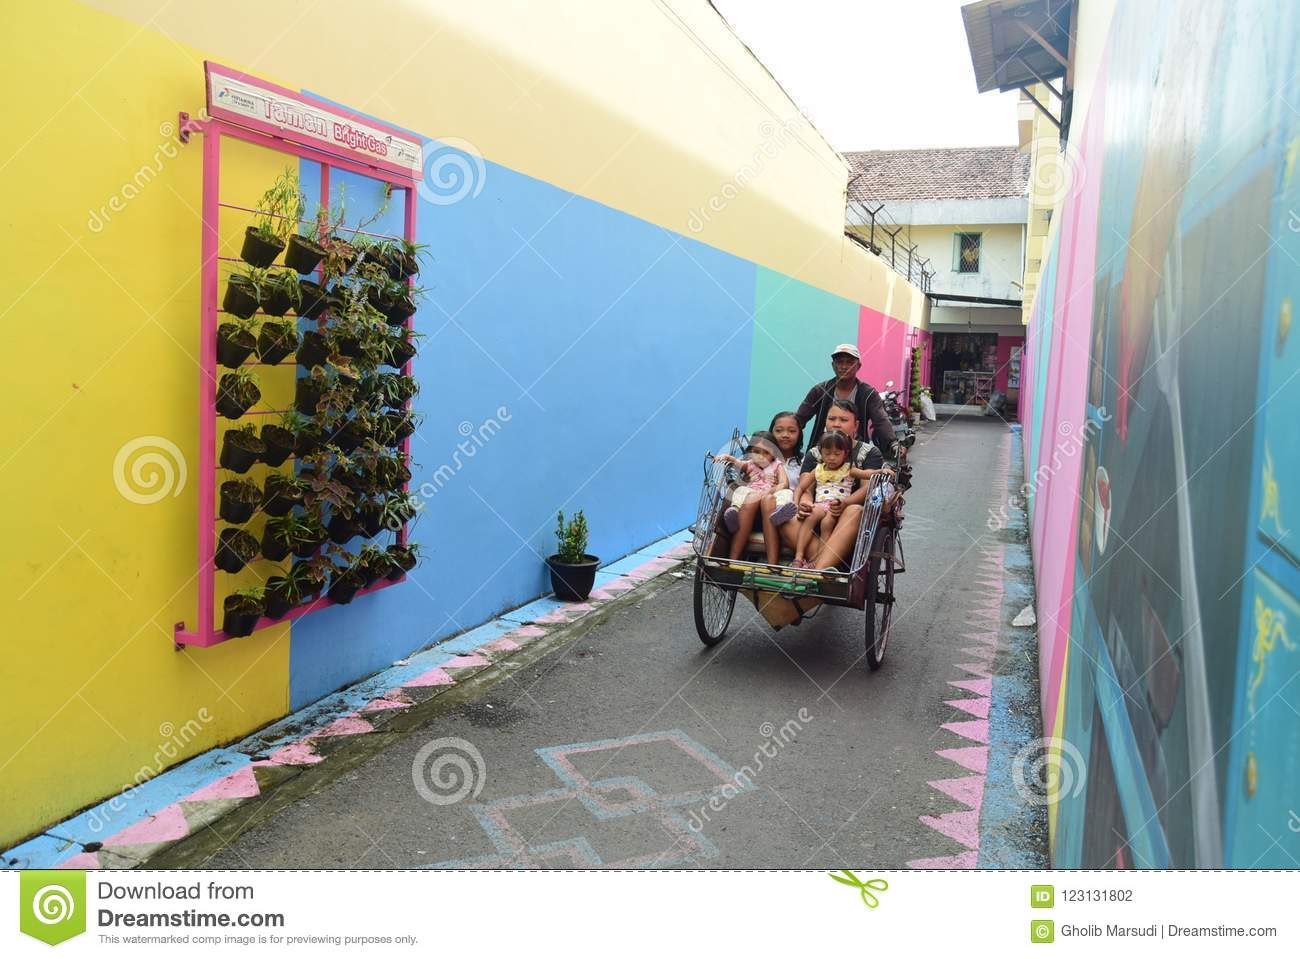 Bright Gas Village in the city of Semarang